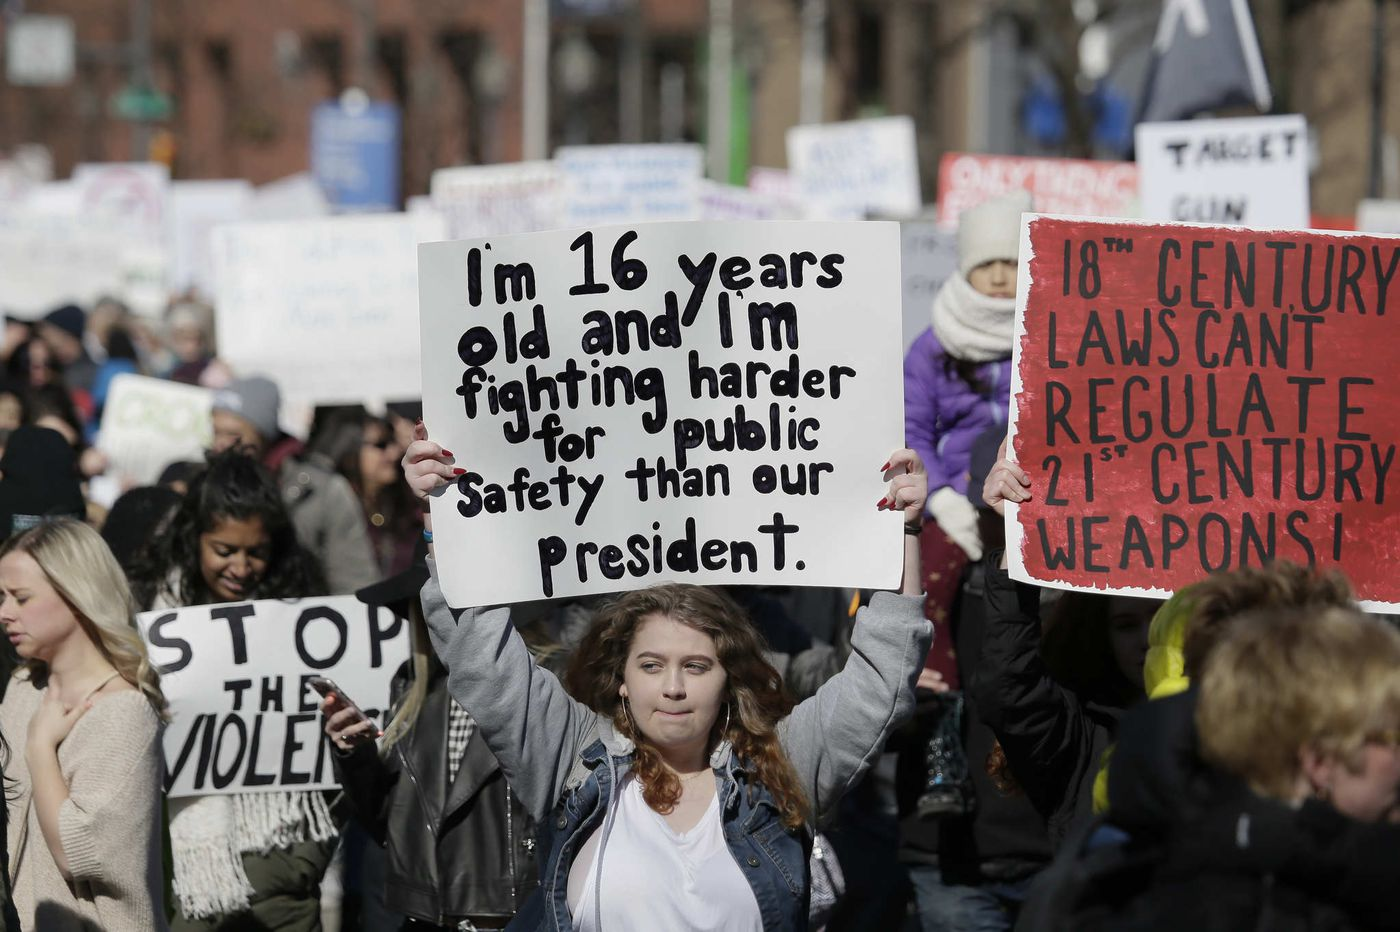 March for Our Lives Philadelphia to hold rally against gun violence Sunday